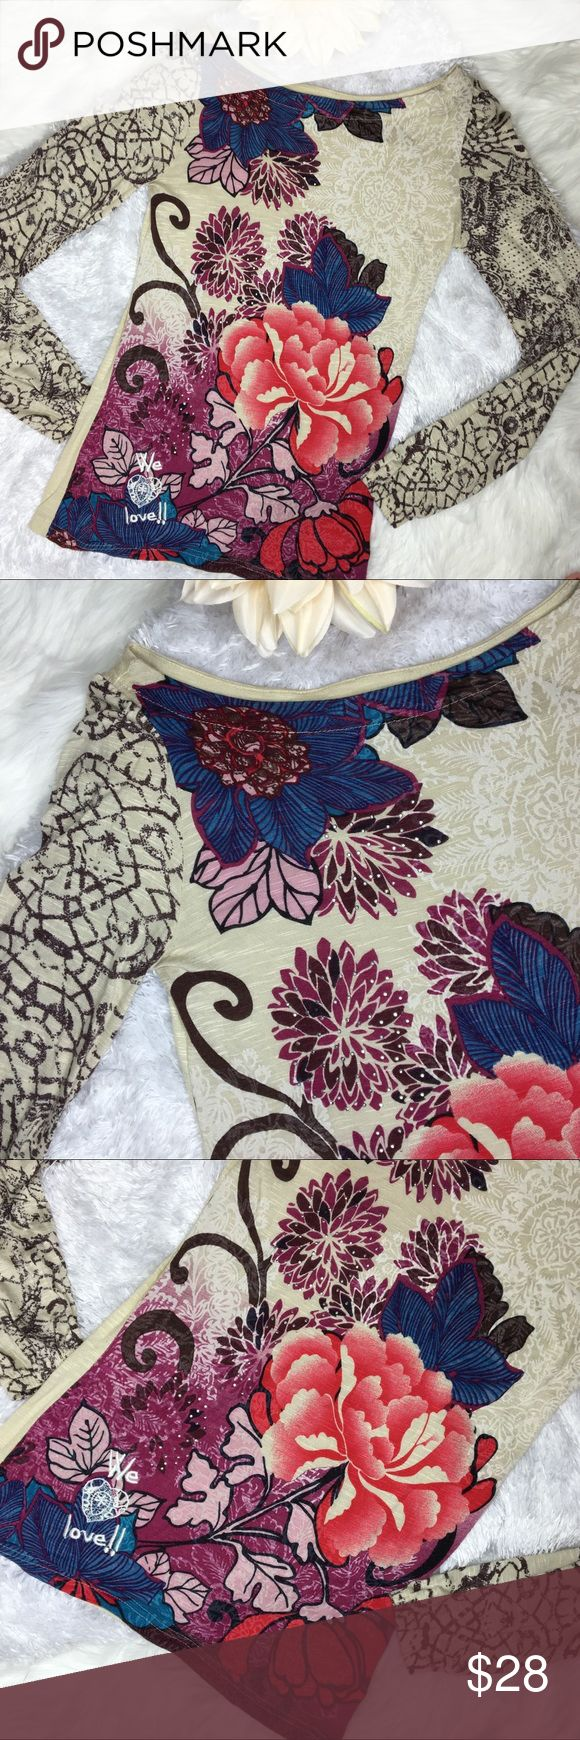 """Desigual Burnout Long Sleeve floral embellish top Desigual long sleeve floral embellish burnout top. Size Small. Made in India. 100% viscose. EUC. Like new. No damage. Wide boat neck, multi color floral """"we love"""", elastic wrist cuffs. Approx measurements laying flat: 16"""" chest 26"""" length 26.5"""" sleeve. Wear to music festival outdoors, with bralette under, with Cami and jeans. #desigual #top #shirt #longsleeve #floral #embelish #small #cream #burnout ❌no trades❌ Desigual Tops Tees - Long…"""